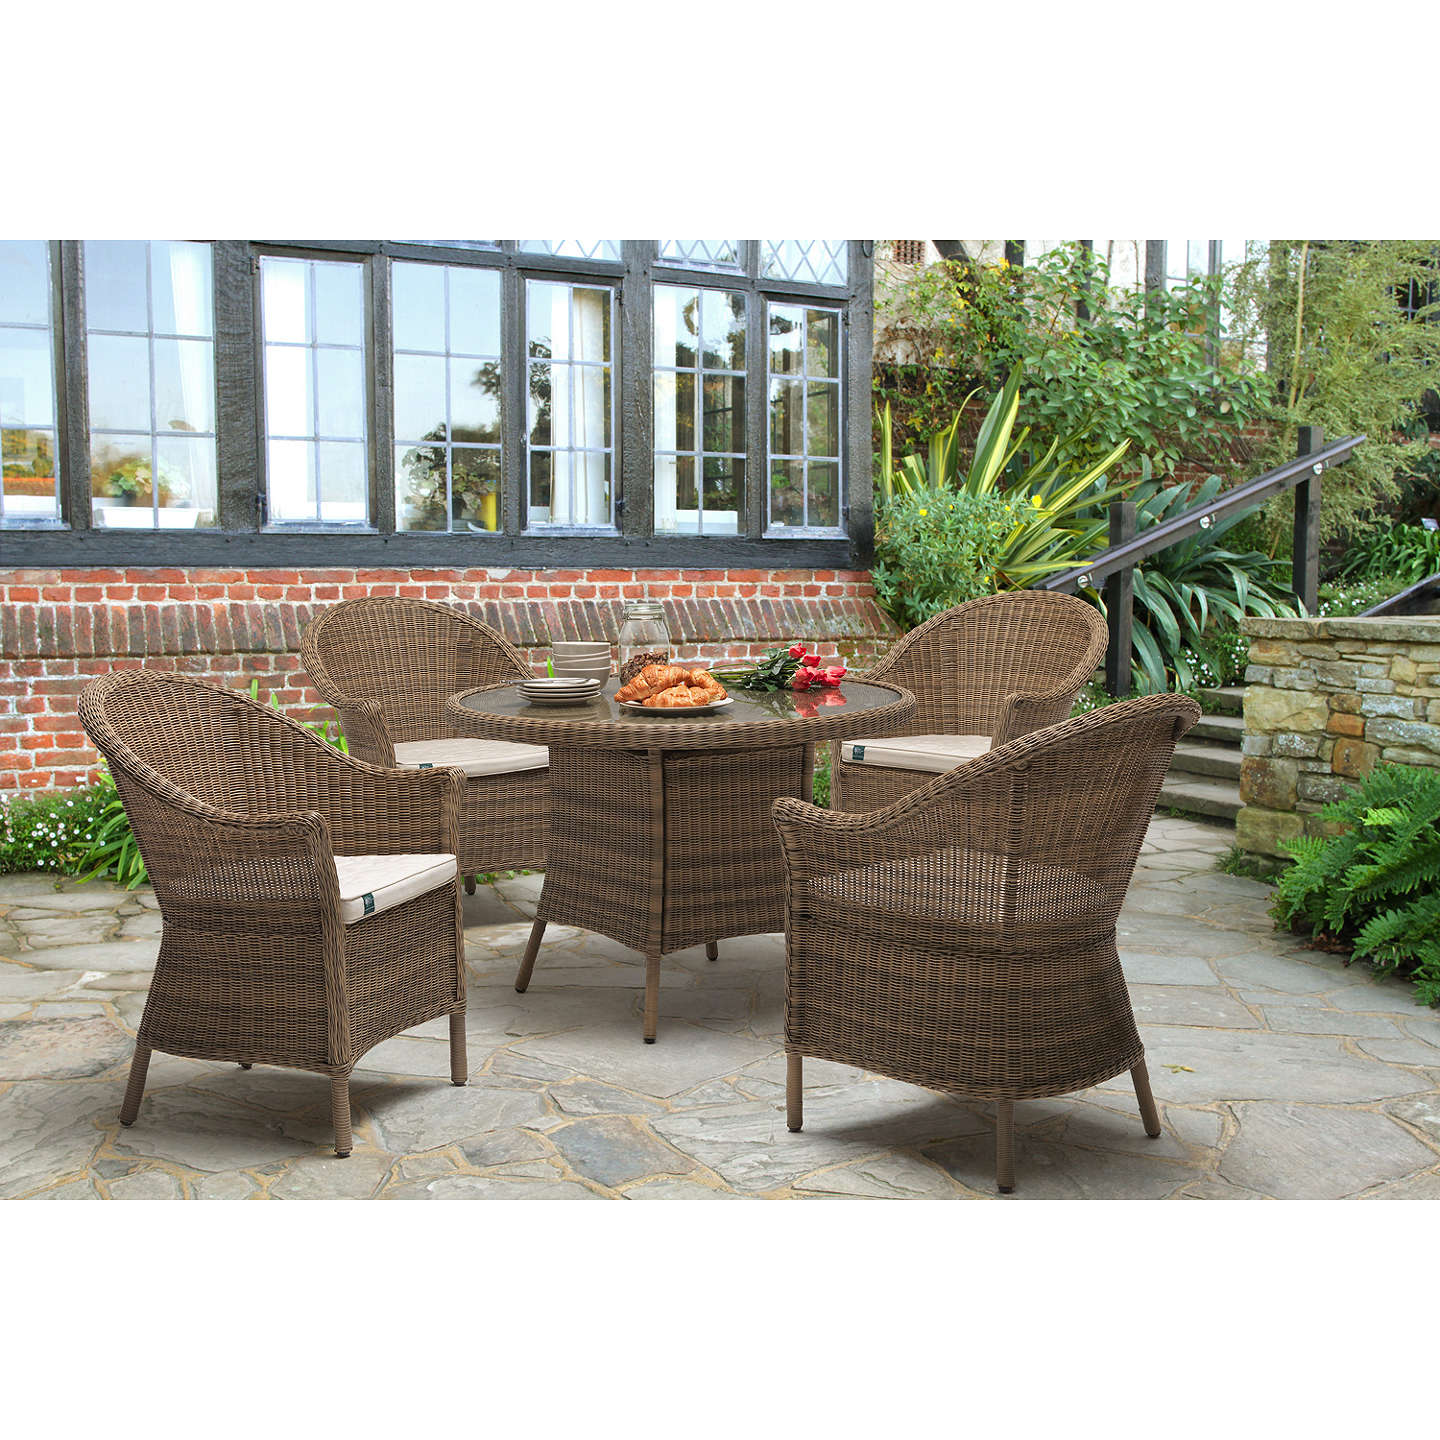 KETTLER RHS Harlow Carr 4 Seater Garden Table and Chairs Set ...